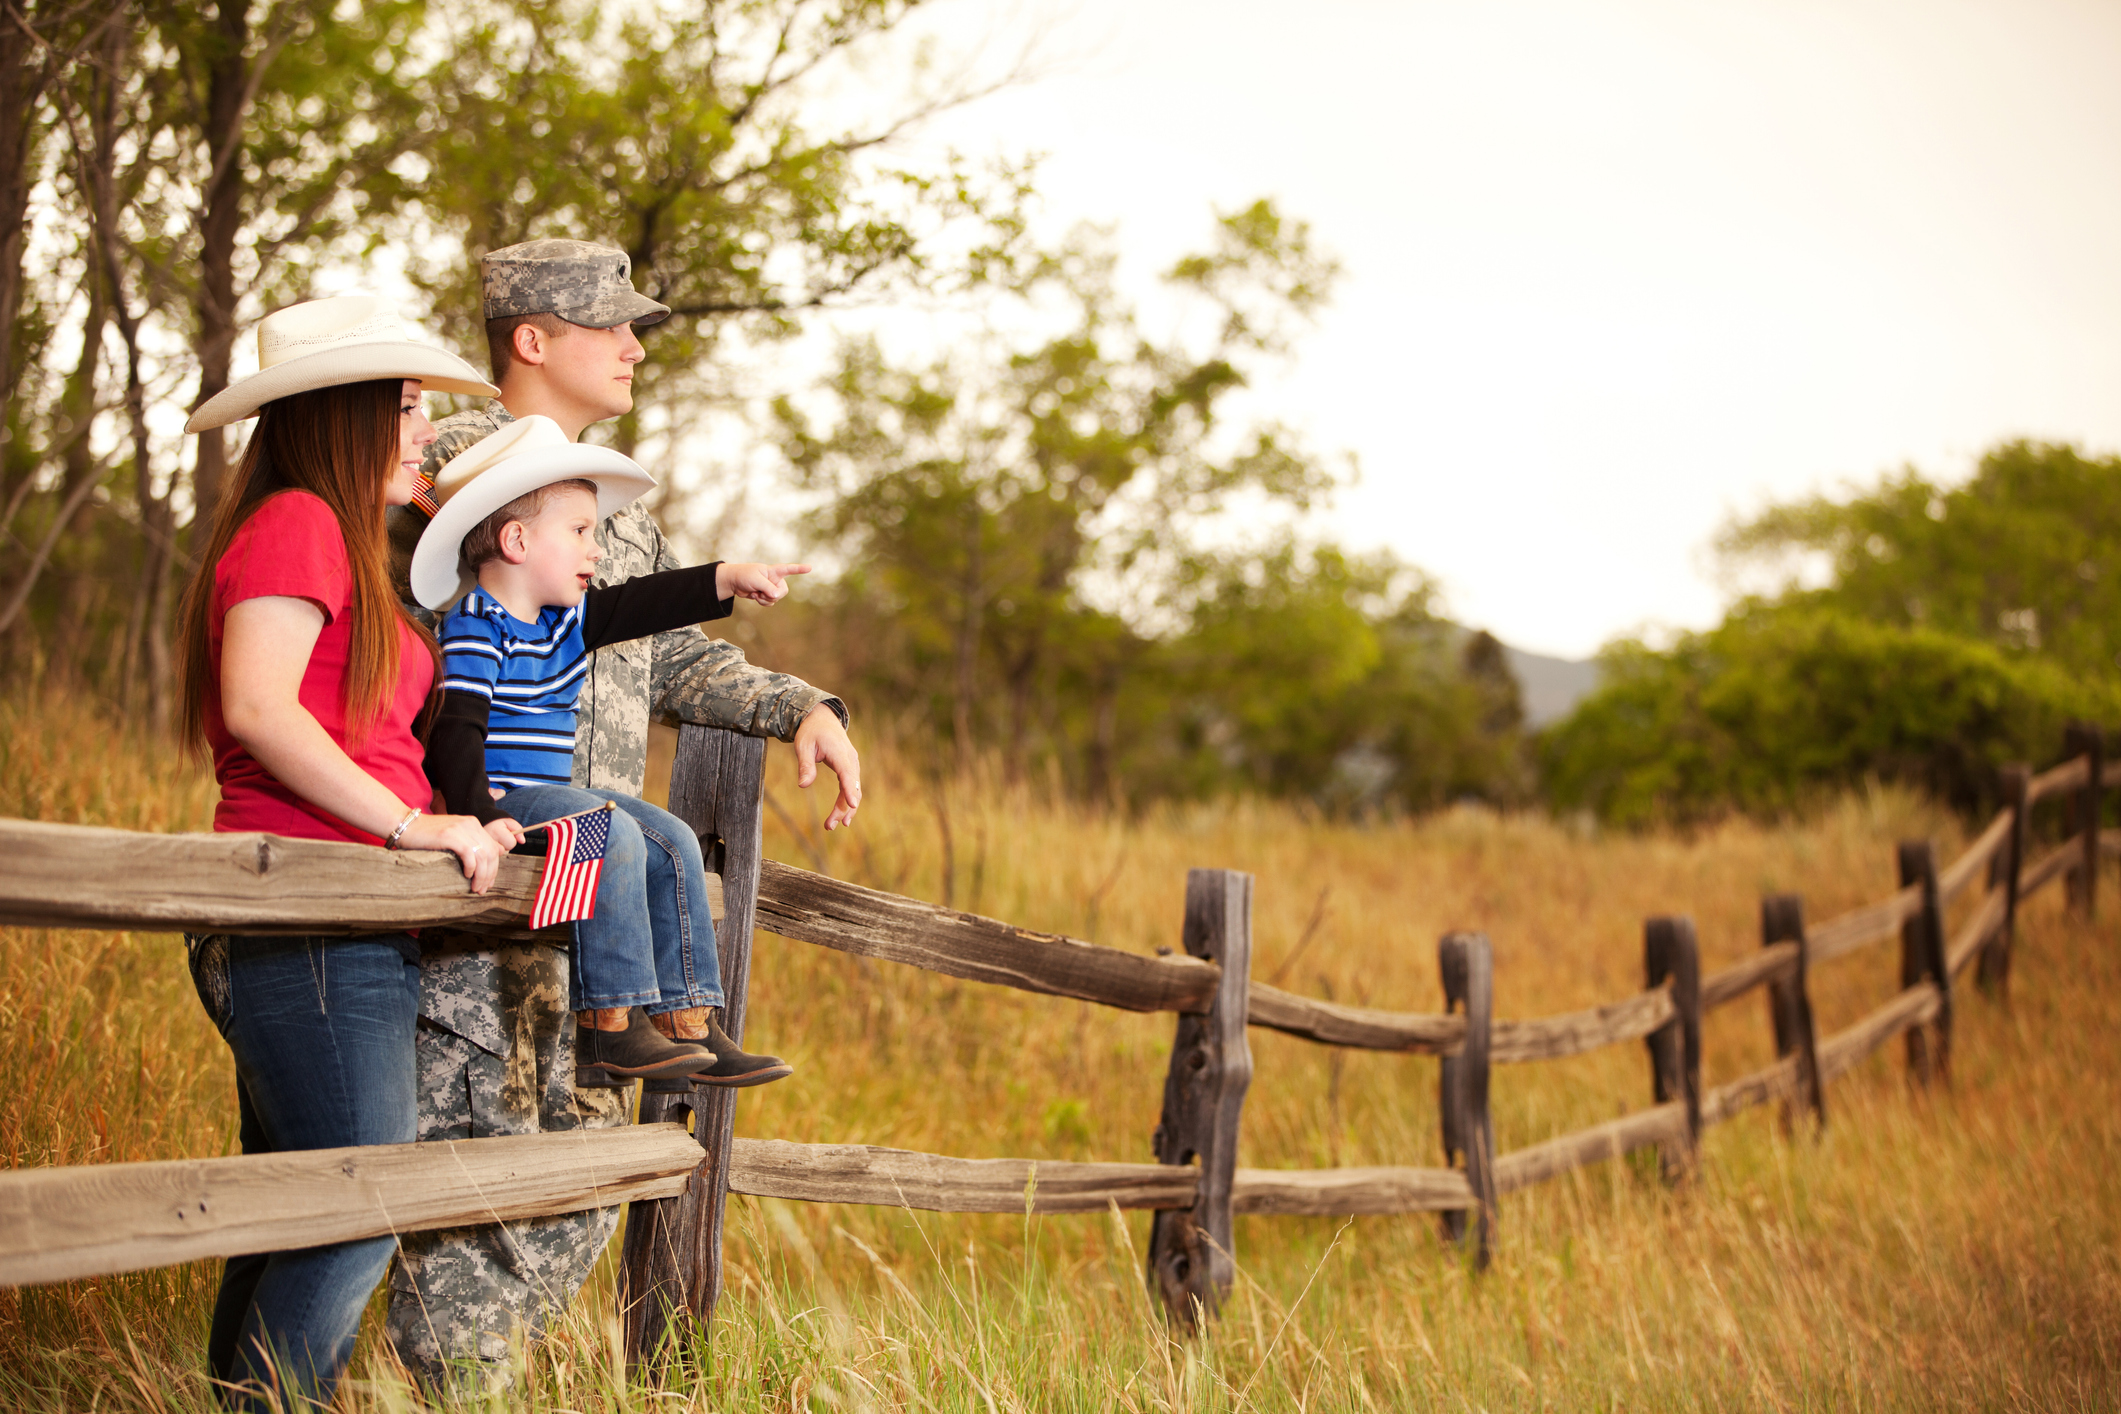 How to Build a Homestead While Serving in the Military